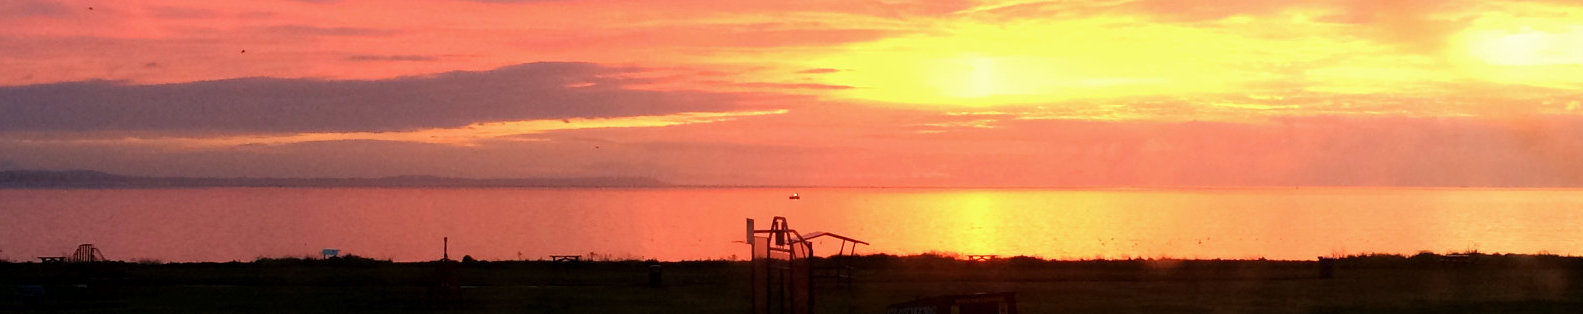 Sunsent over the sea near Wigtown, Galloway